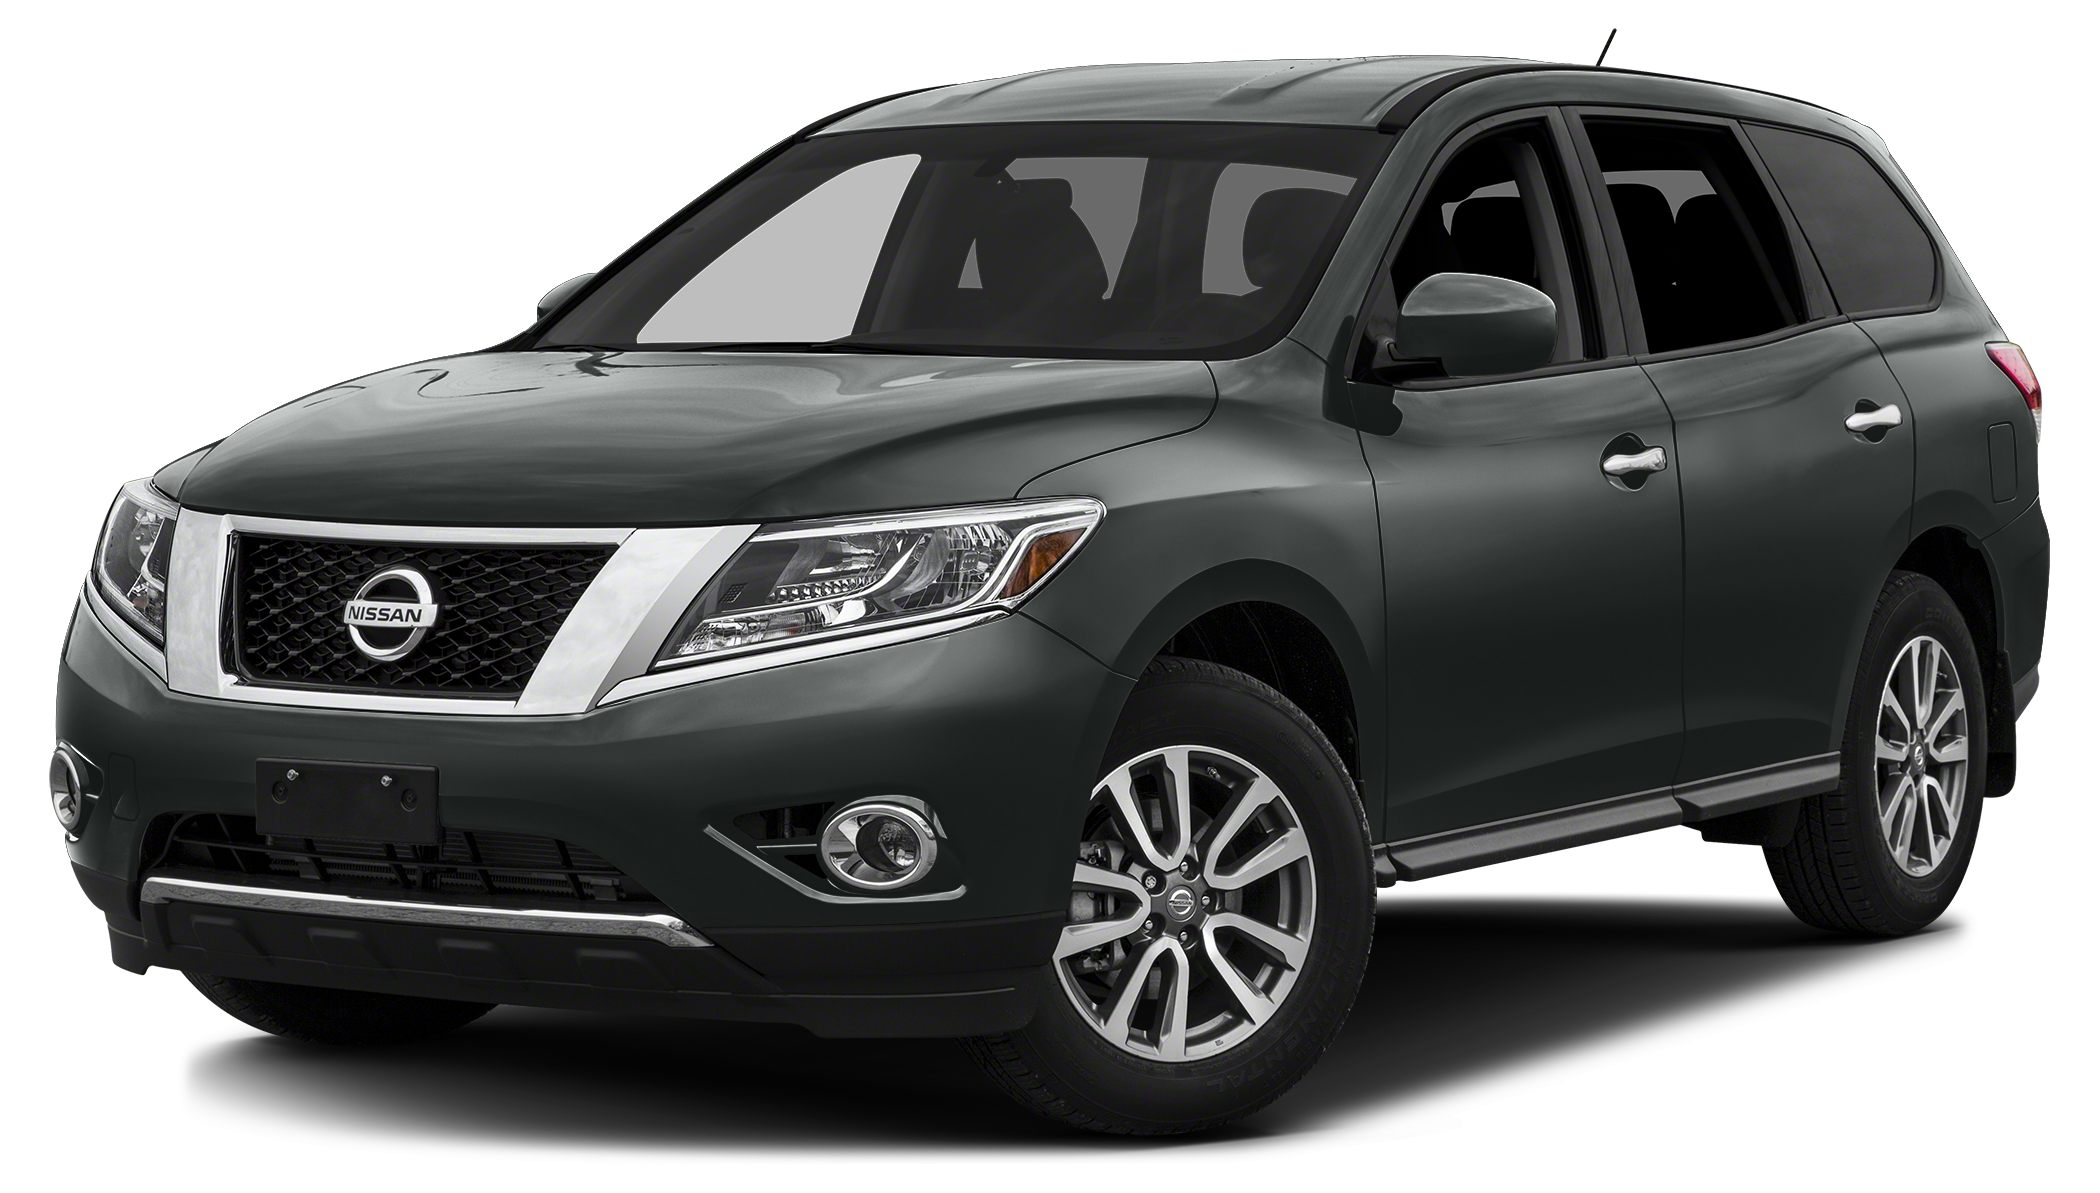 2015 Nissan Pathfinder SL CARFAX 1-Owner FUEL EFFICIENT 26 MPG Hwy19 MPG City PRICED TO MOVE